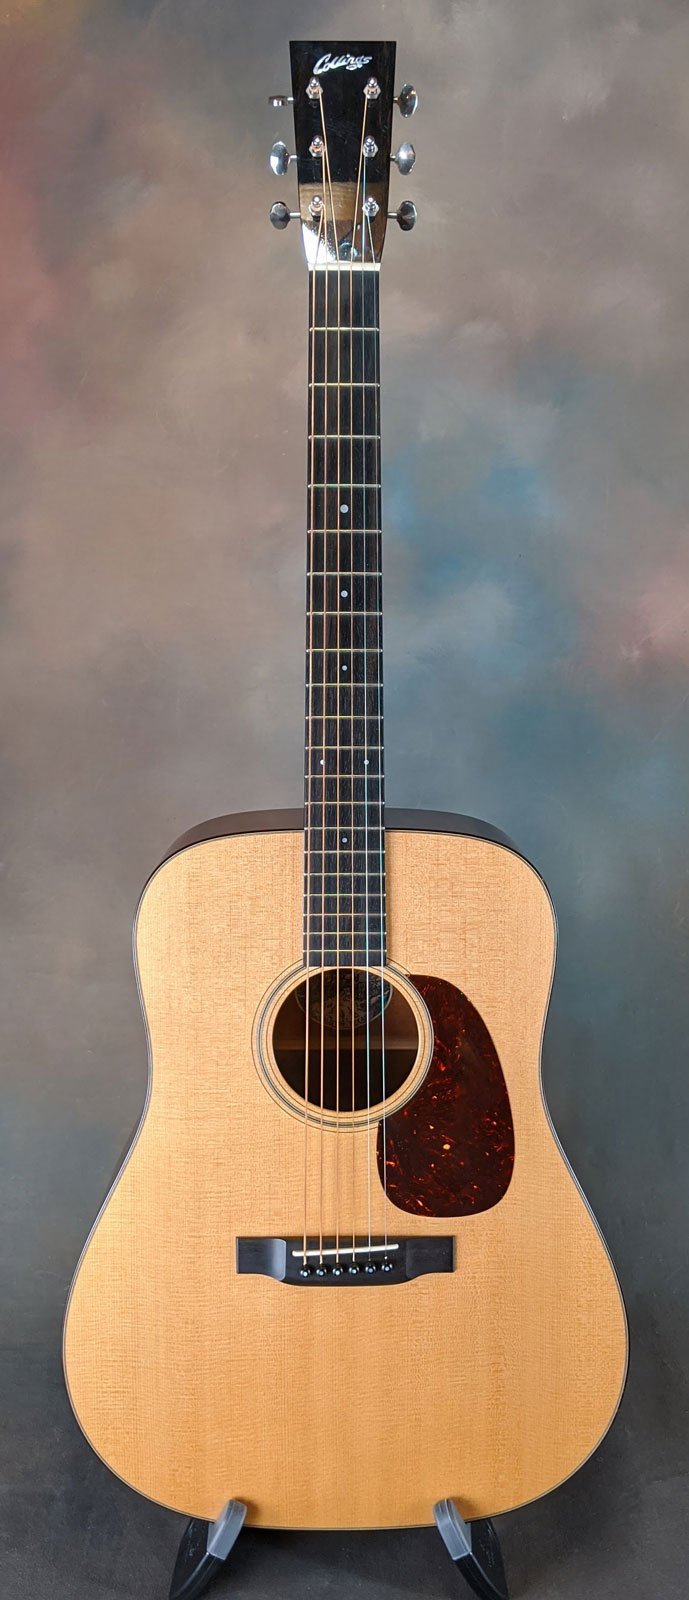 2013 Collings D1 Custom